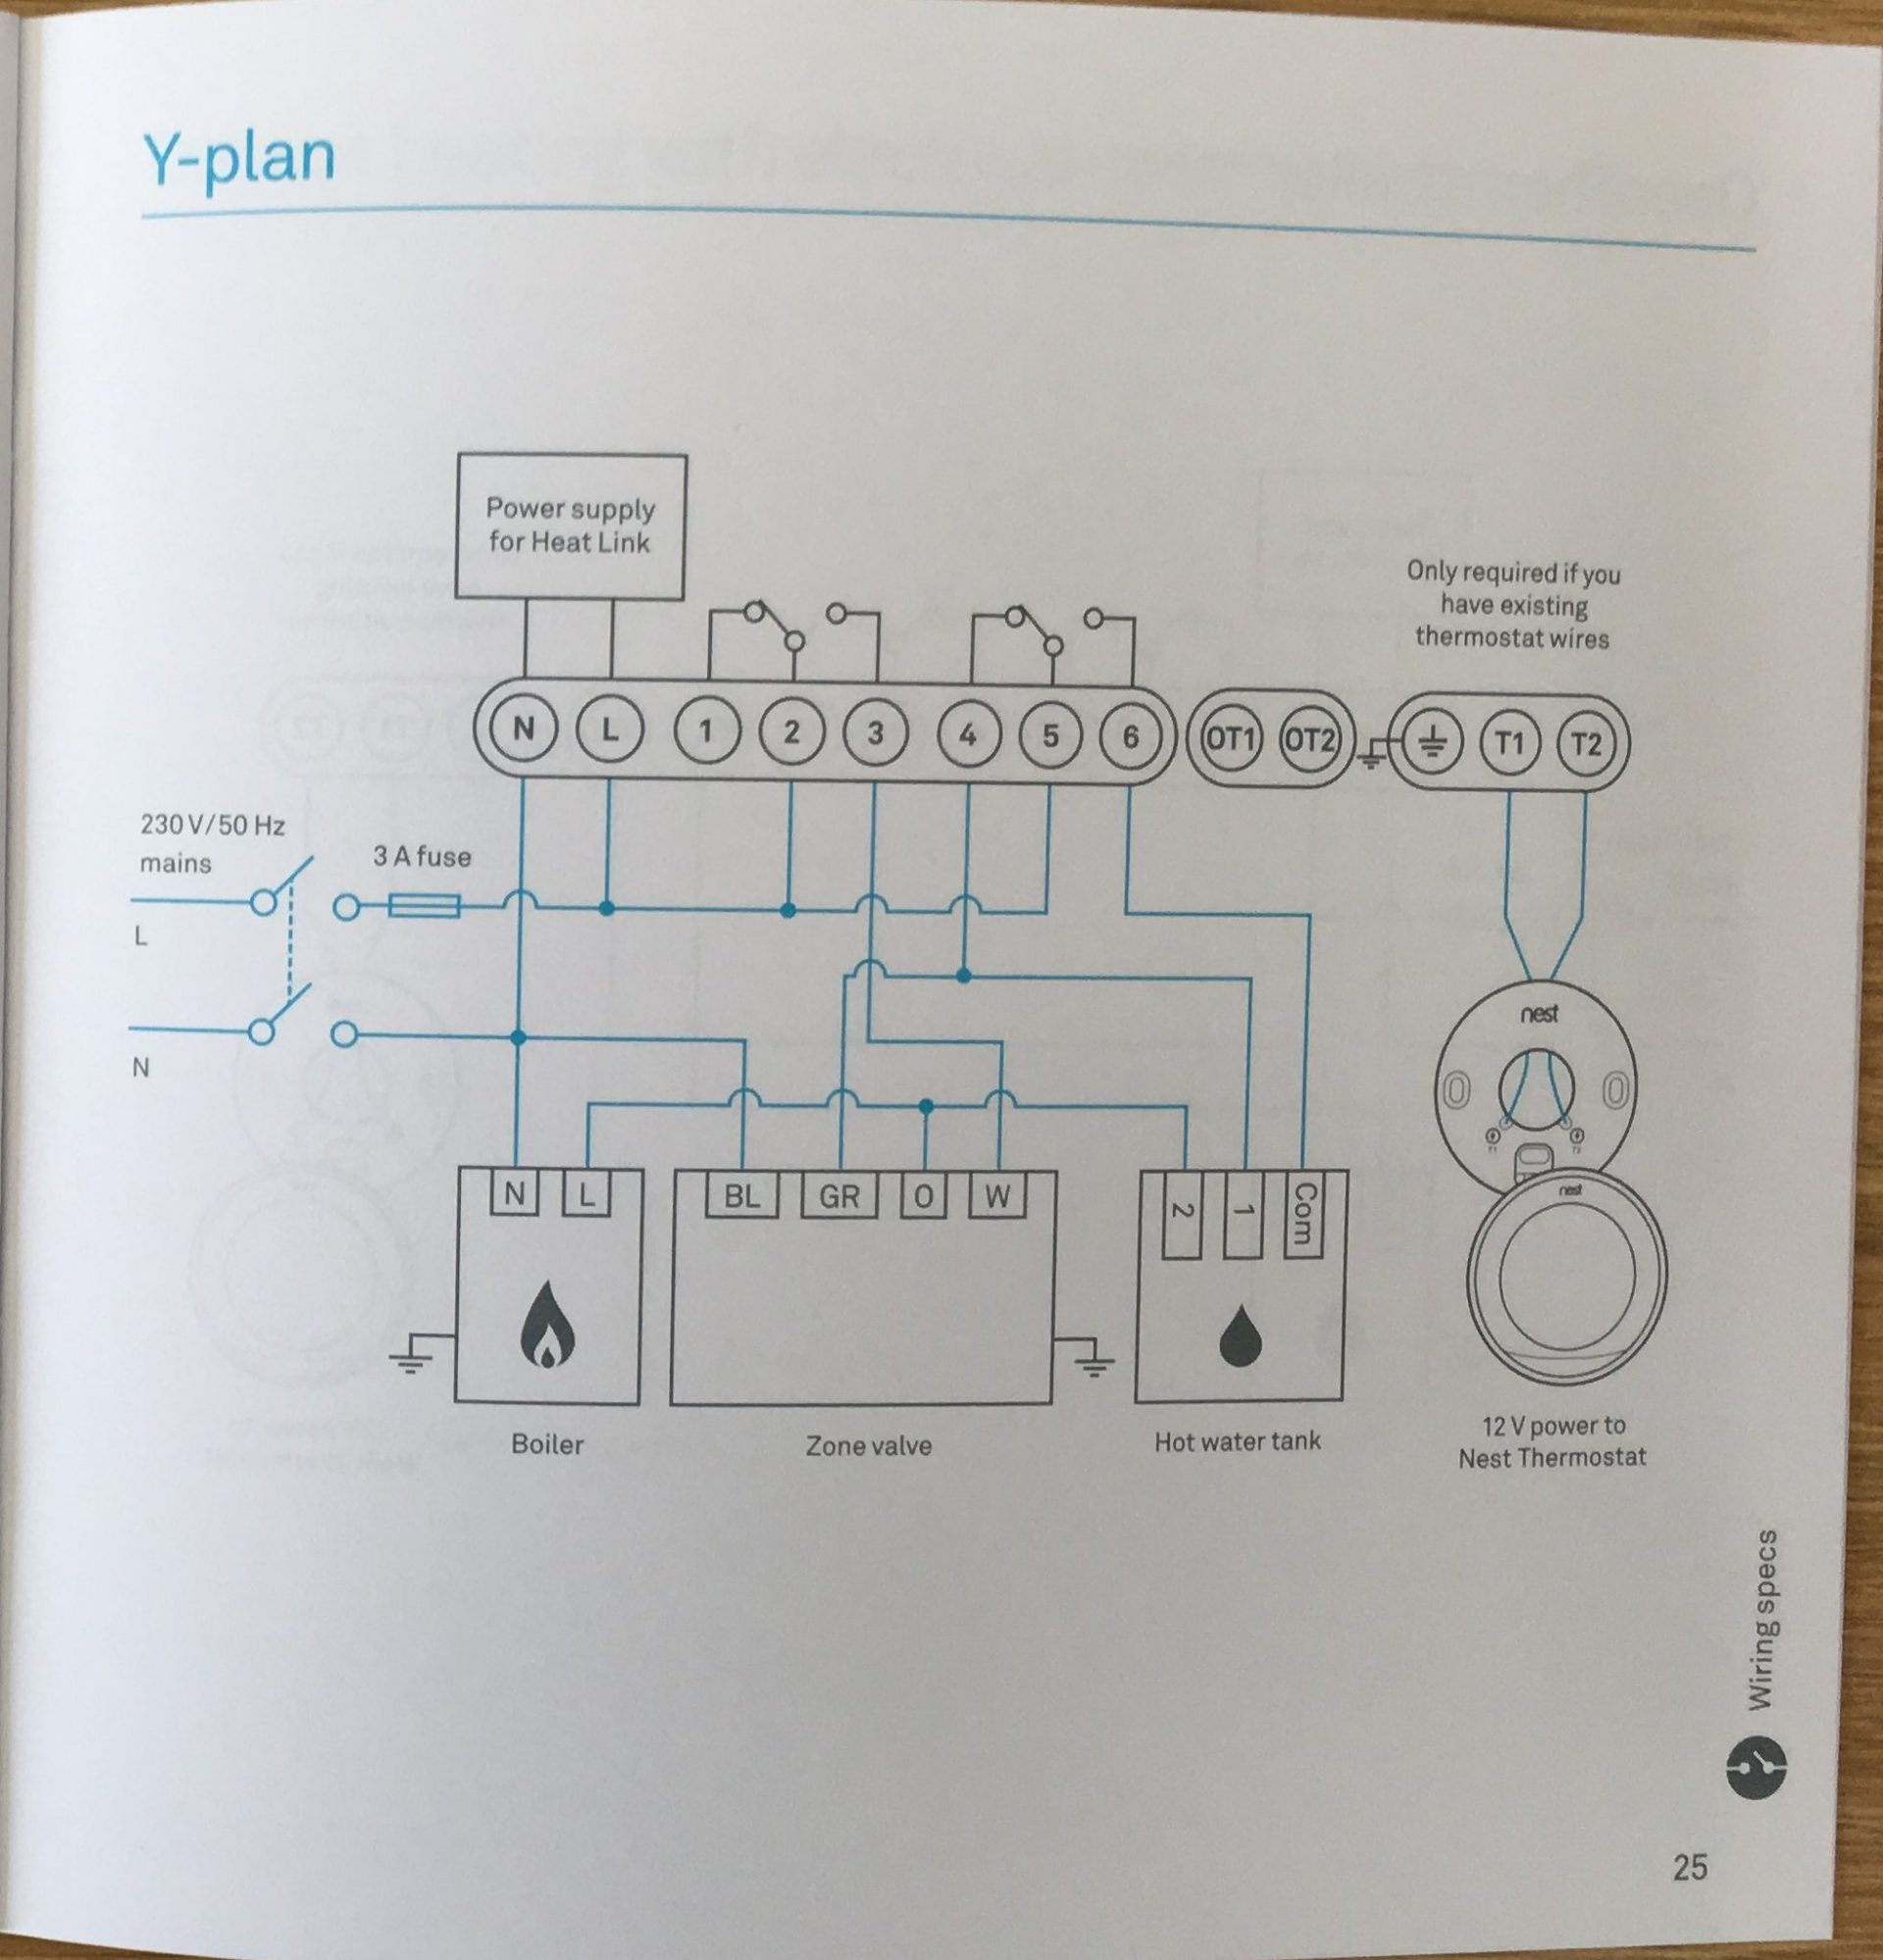 How To Install The Nest Learning Thermostat (3Rd Gen) In A Y-Plan - Nest Water Wiring Diagram